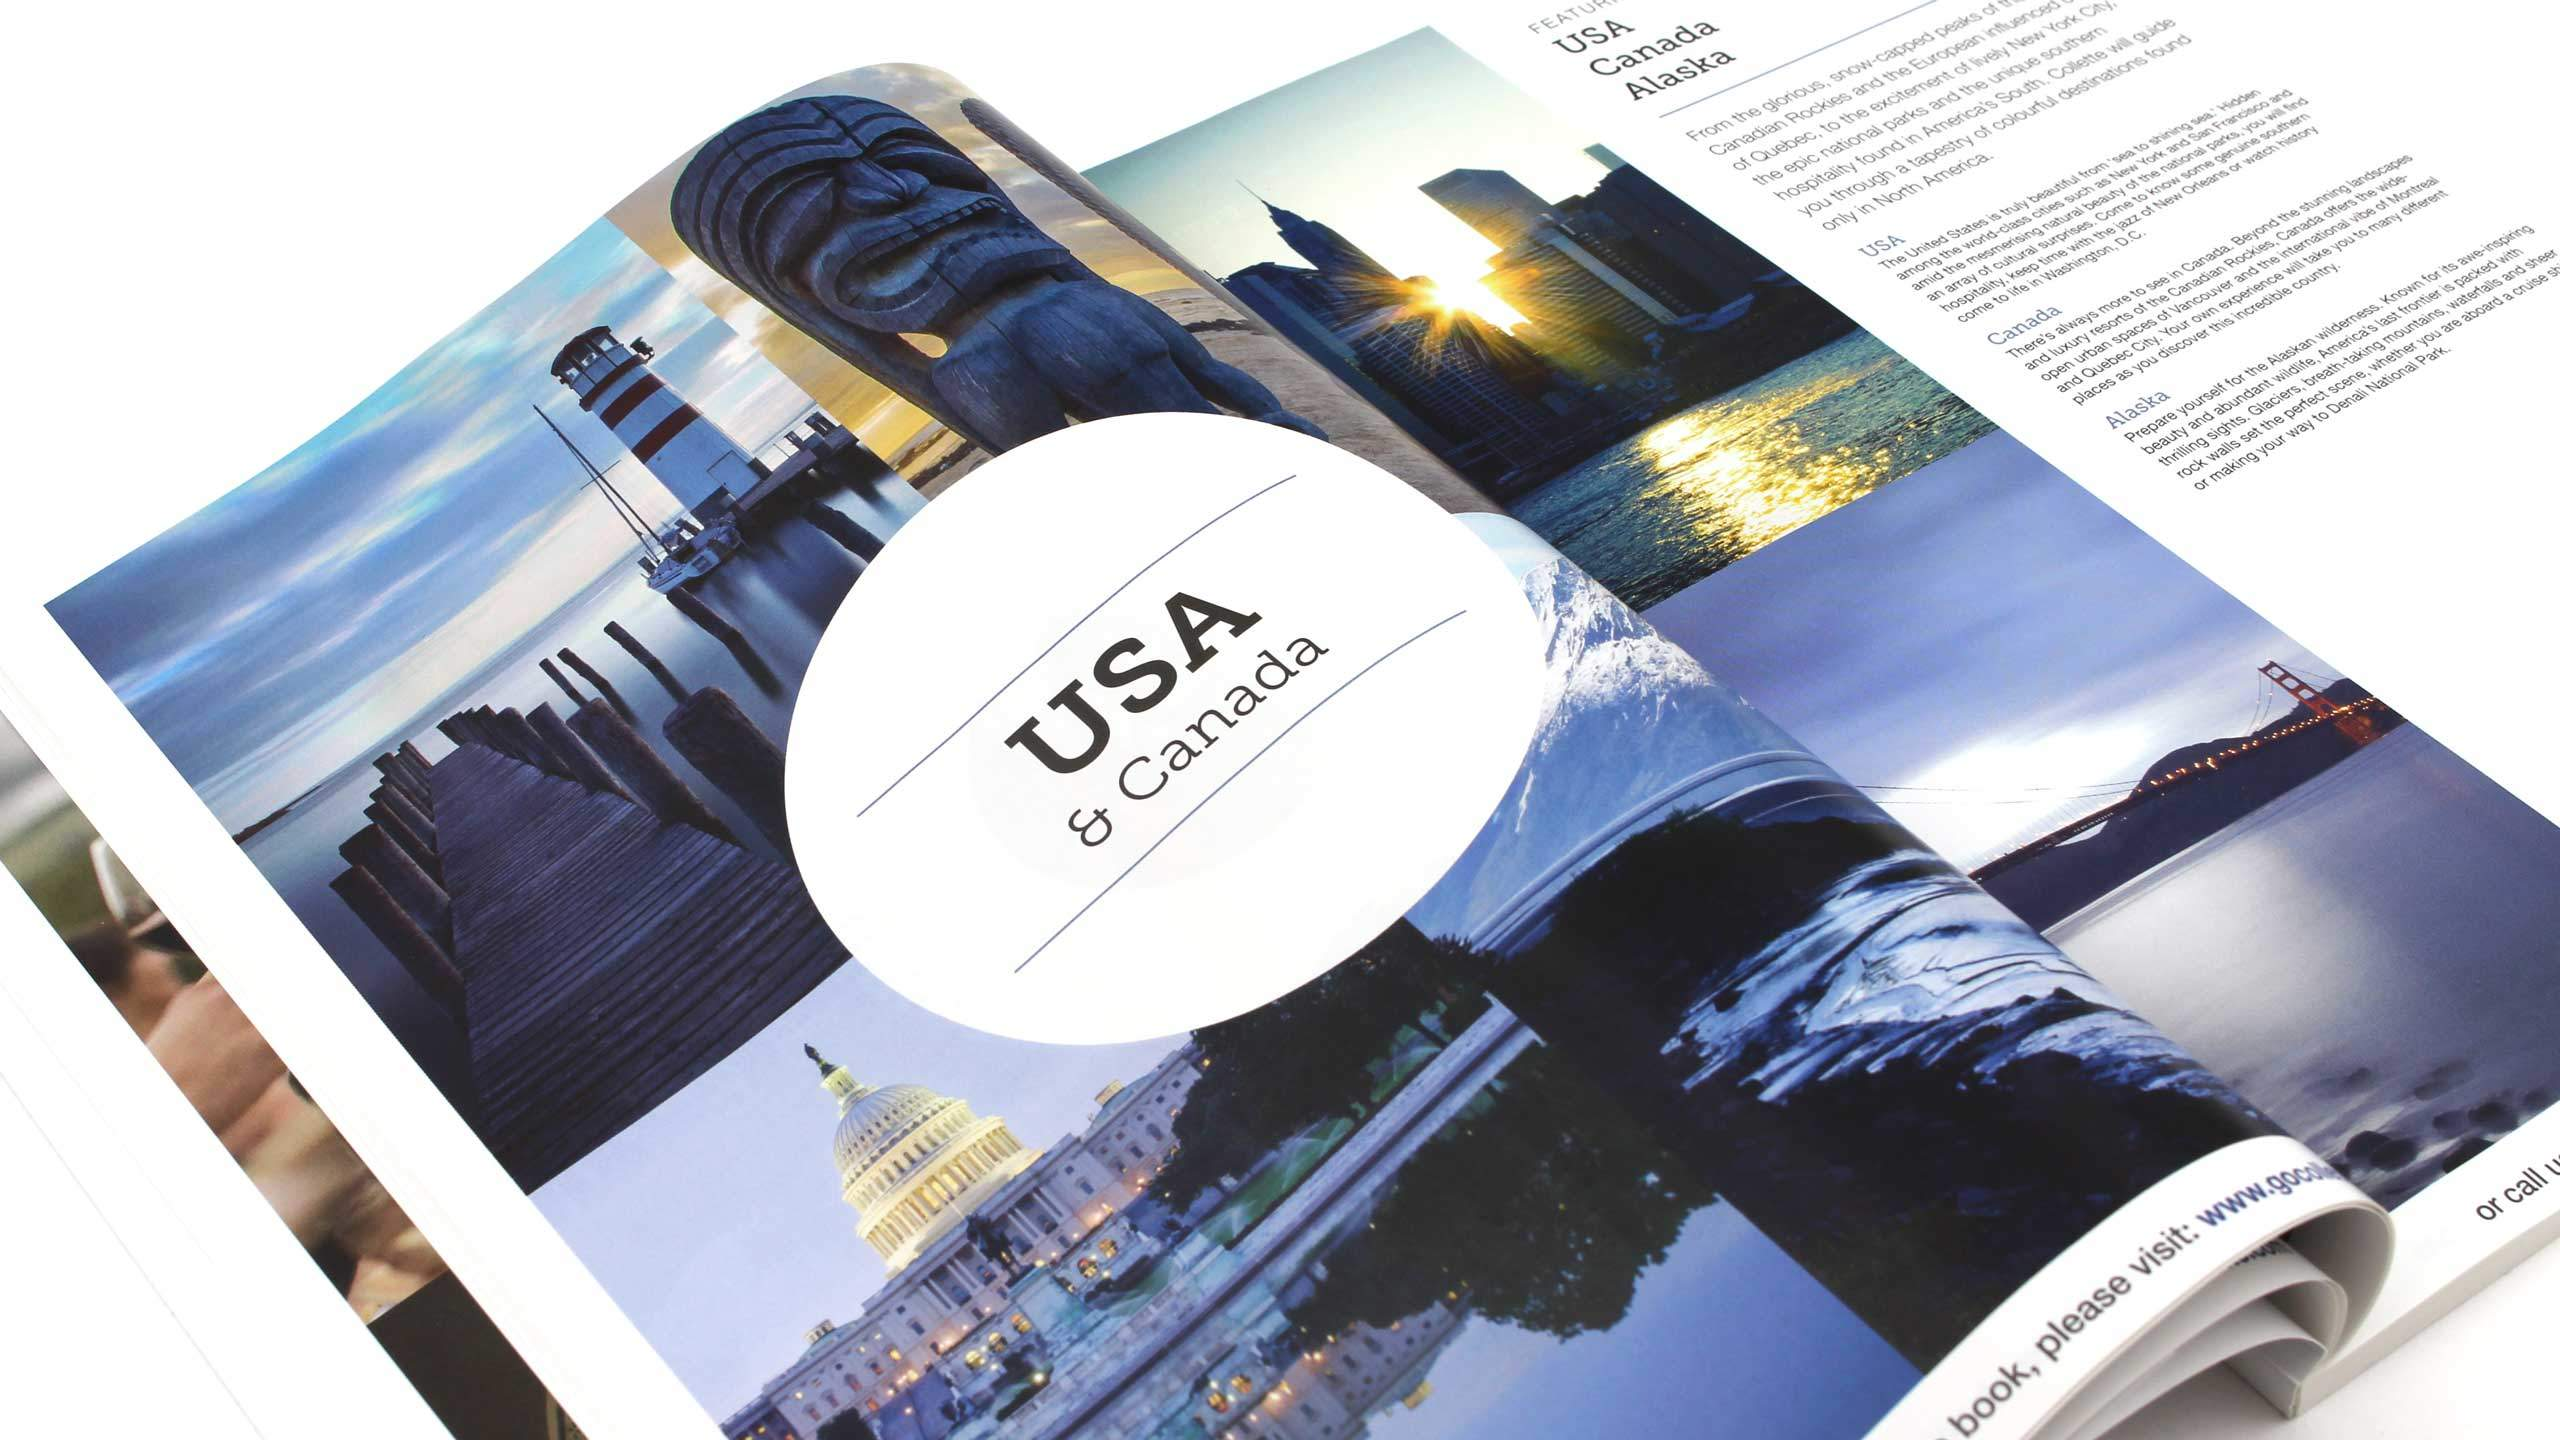 escorted travel brochure design usa canada pages collette thomas cook